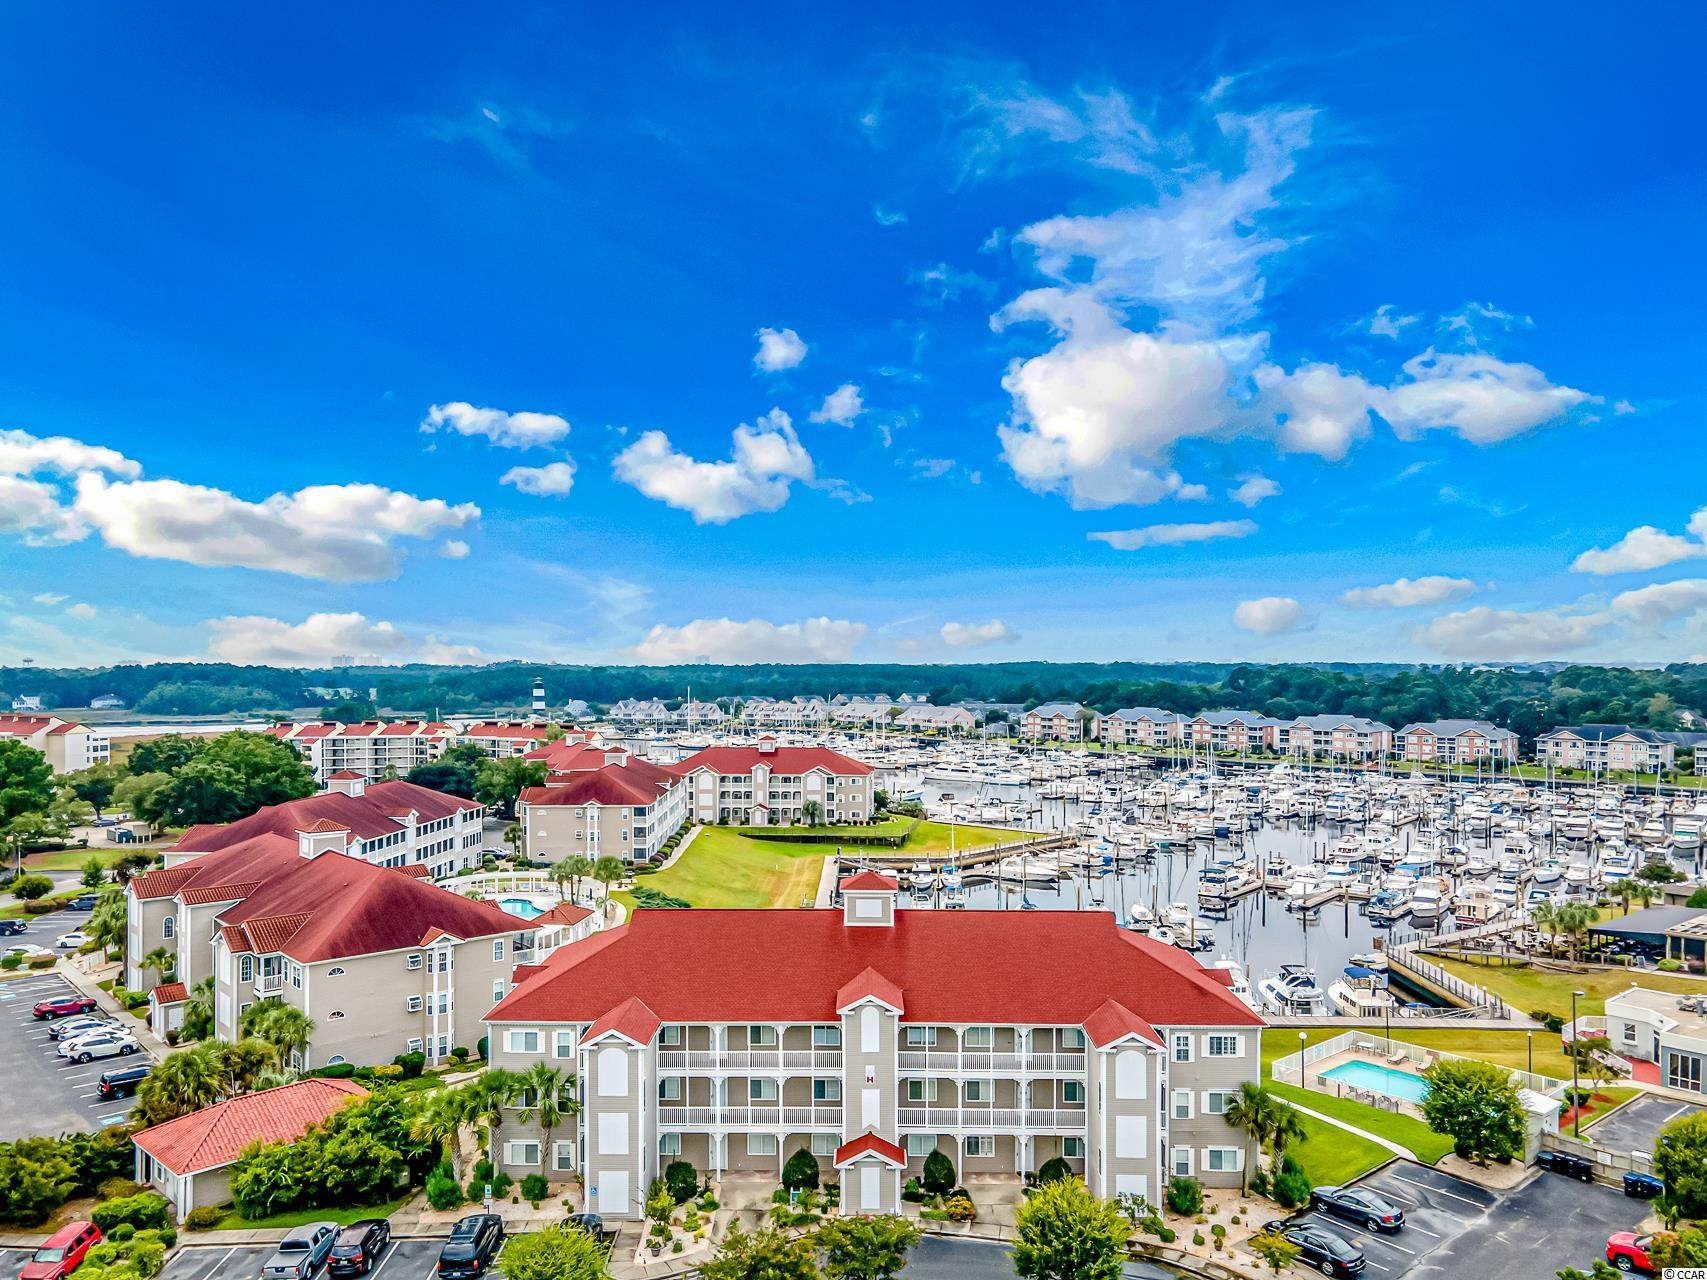 If you've been looking for a fully furnished first floor condo in Little River with gorgeous Intracoastal Waterway and Marina views, look no further. This fully loaded condo is immaculate and is priced to sell. The property features upgraded flooring, updated kitchen with granite counters, open concept and more. All of the bedrooms are spacious and the bathroom features tile floors and large walk in shower. Off of the living room is a huge screened in porch overlooking the marina! You can walk right off the porch to the water! To top it off, the HOA fees are very reasonable. You can't beat the price and location. This one won't last long. Better hurry!